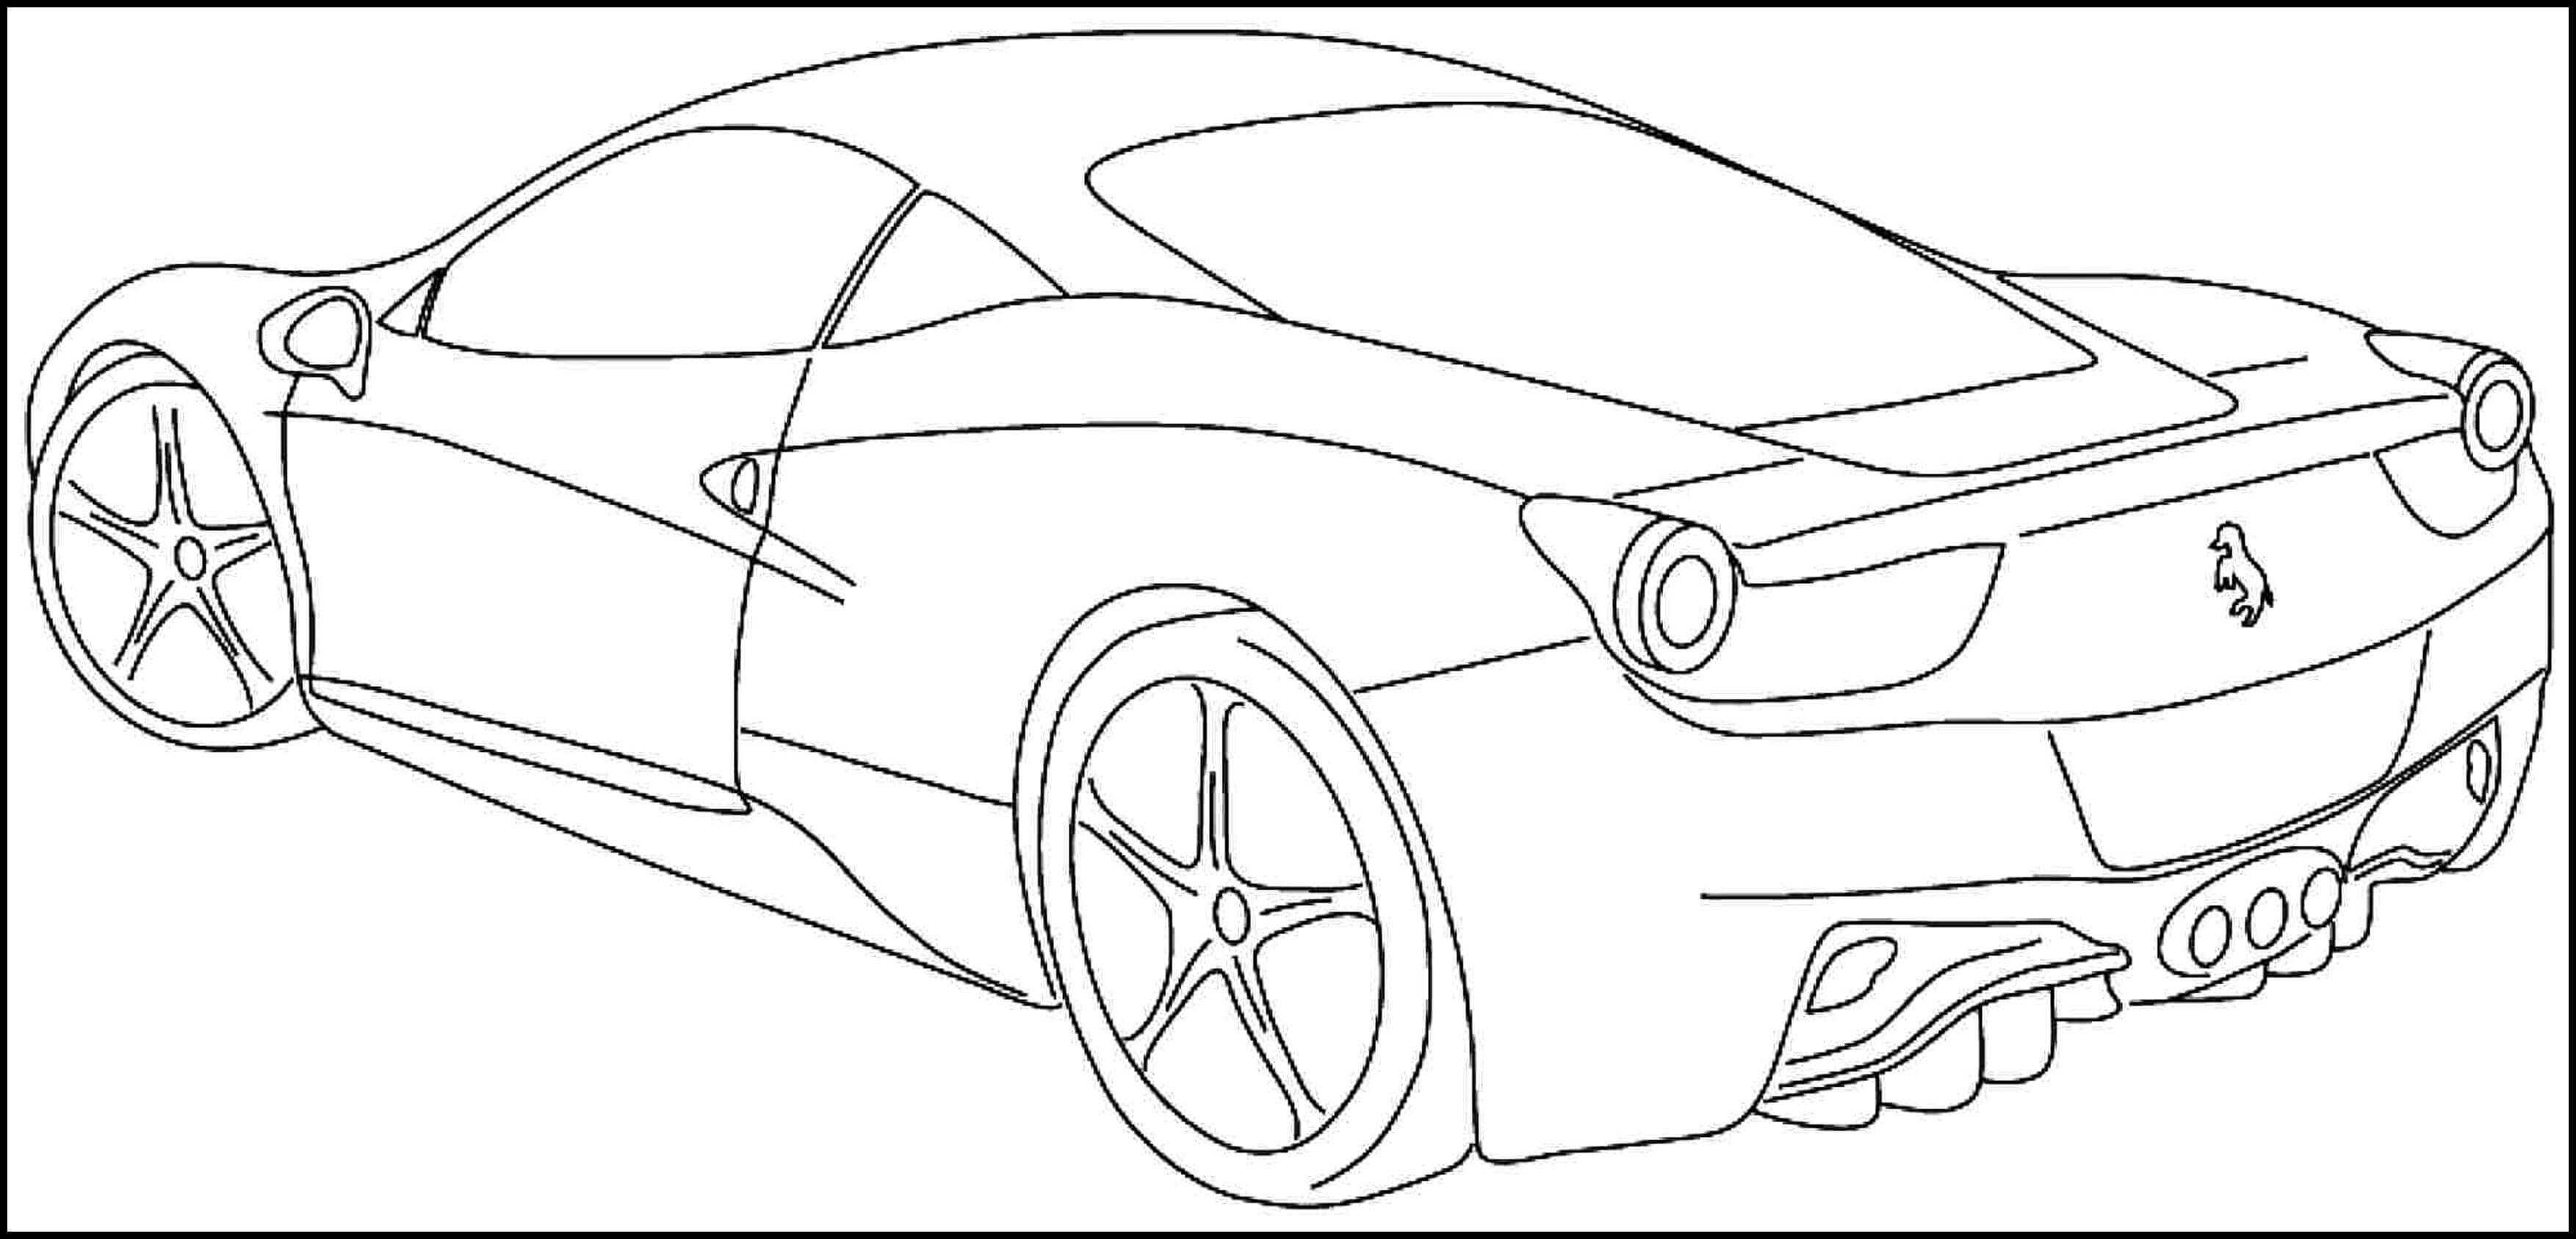 printable sports car coloring pages for kids teens download or print this cool clip art as. Black Bedroom Furniture Sets. Home Design Ideas